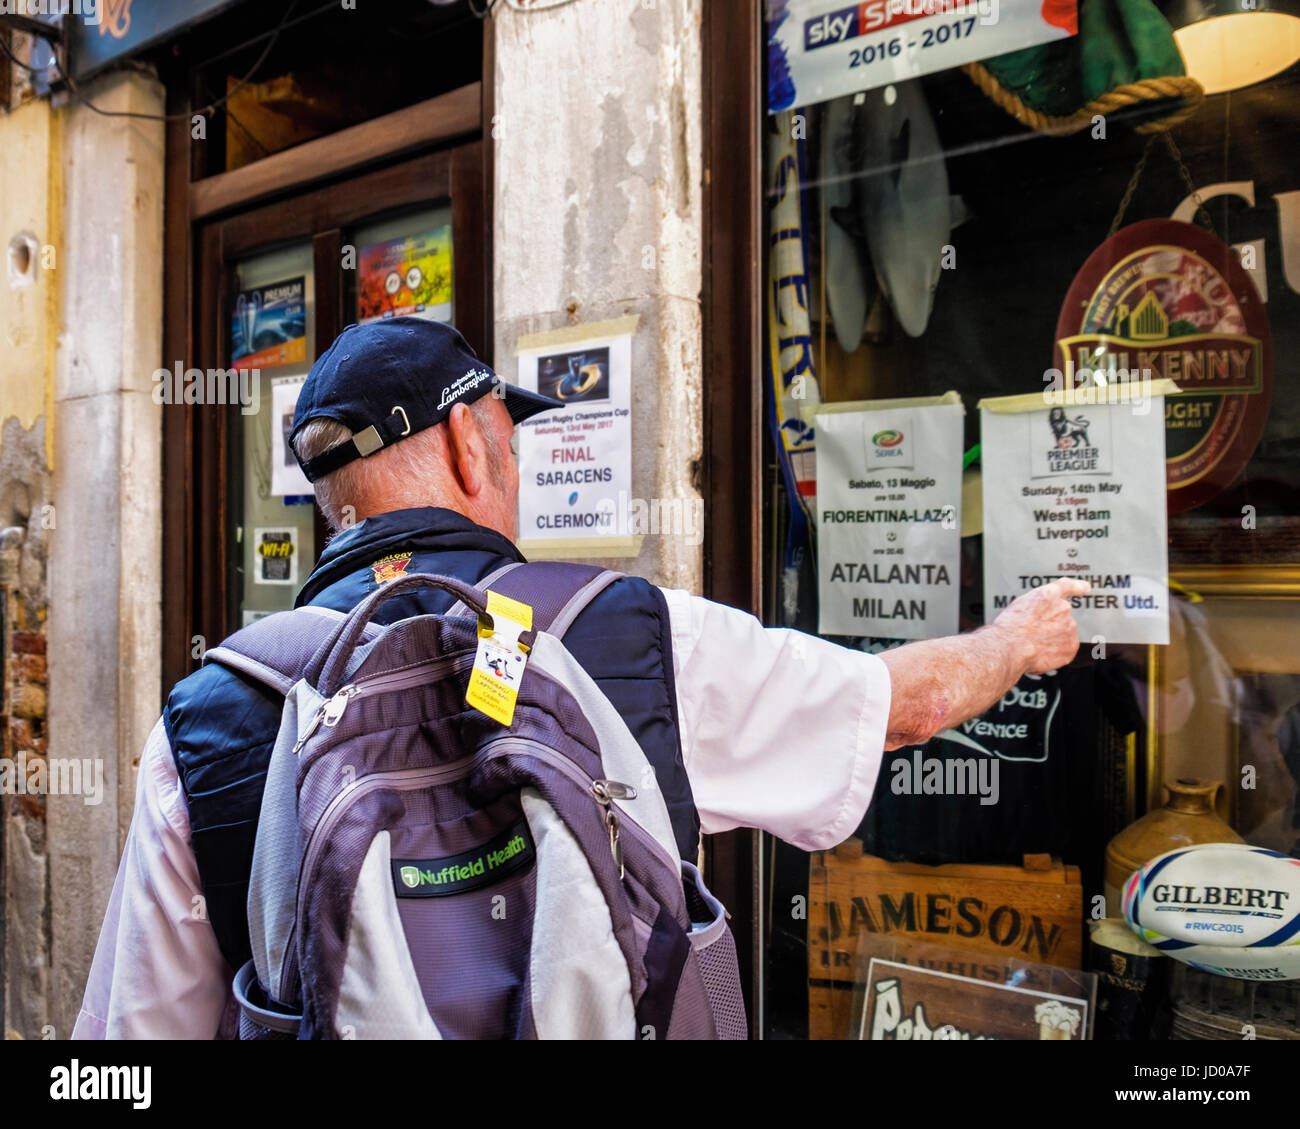 Venice, San Marco.Inishark bar, Senior man finds traditional Irish Pub showing British premier league football games - Stock Image